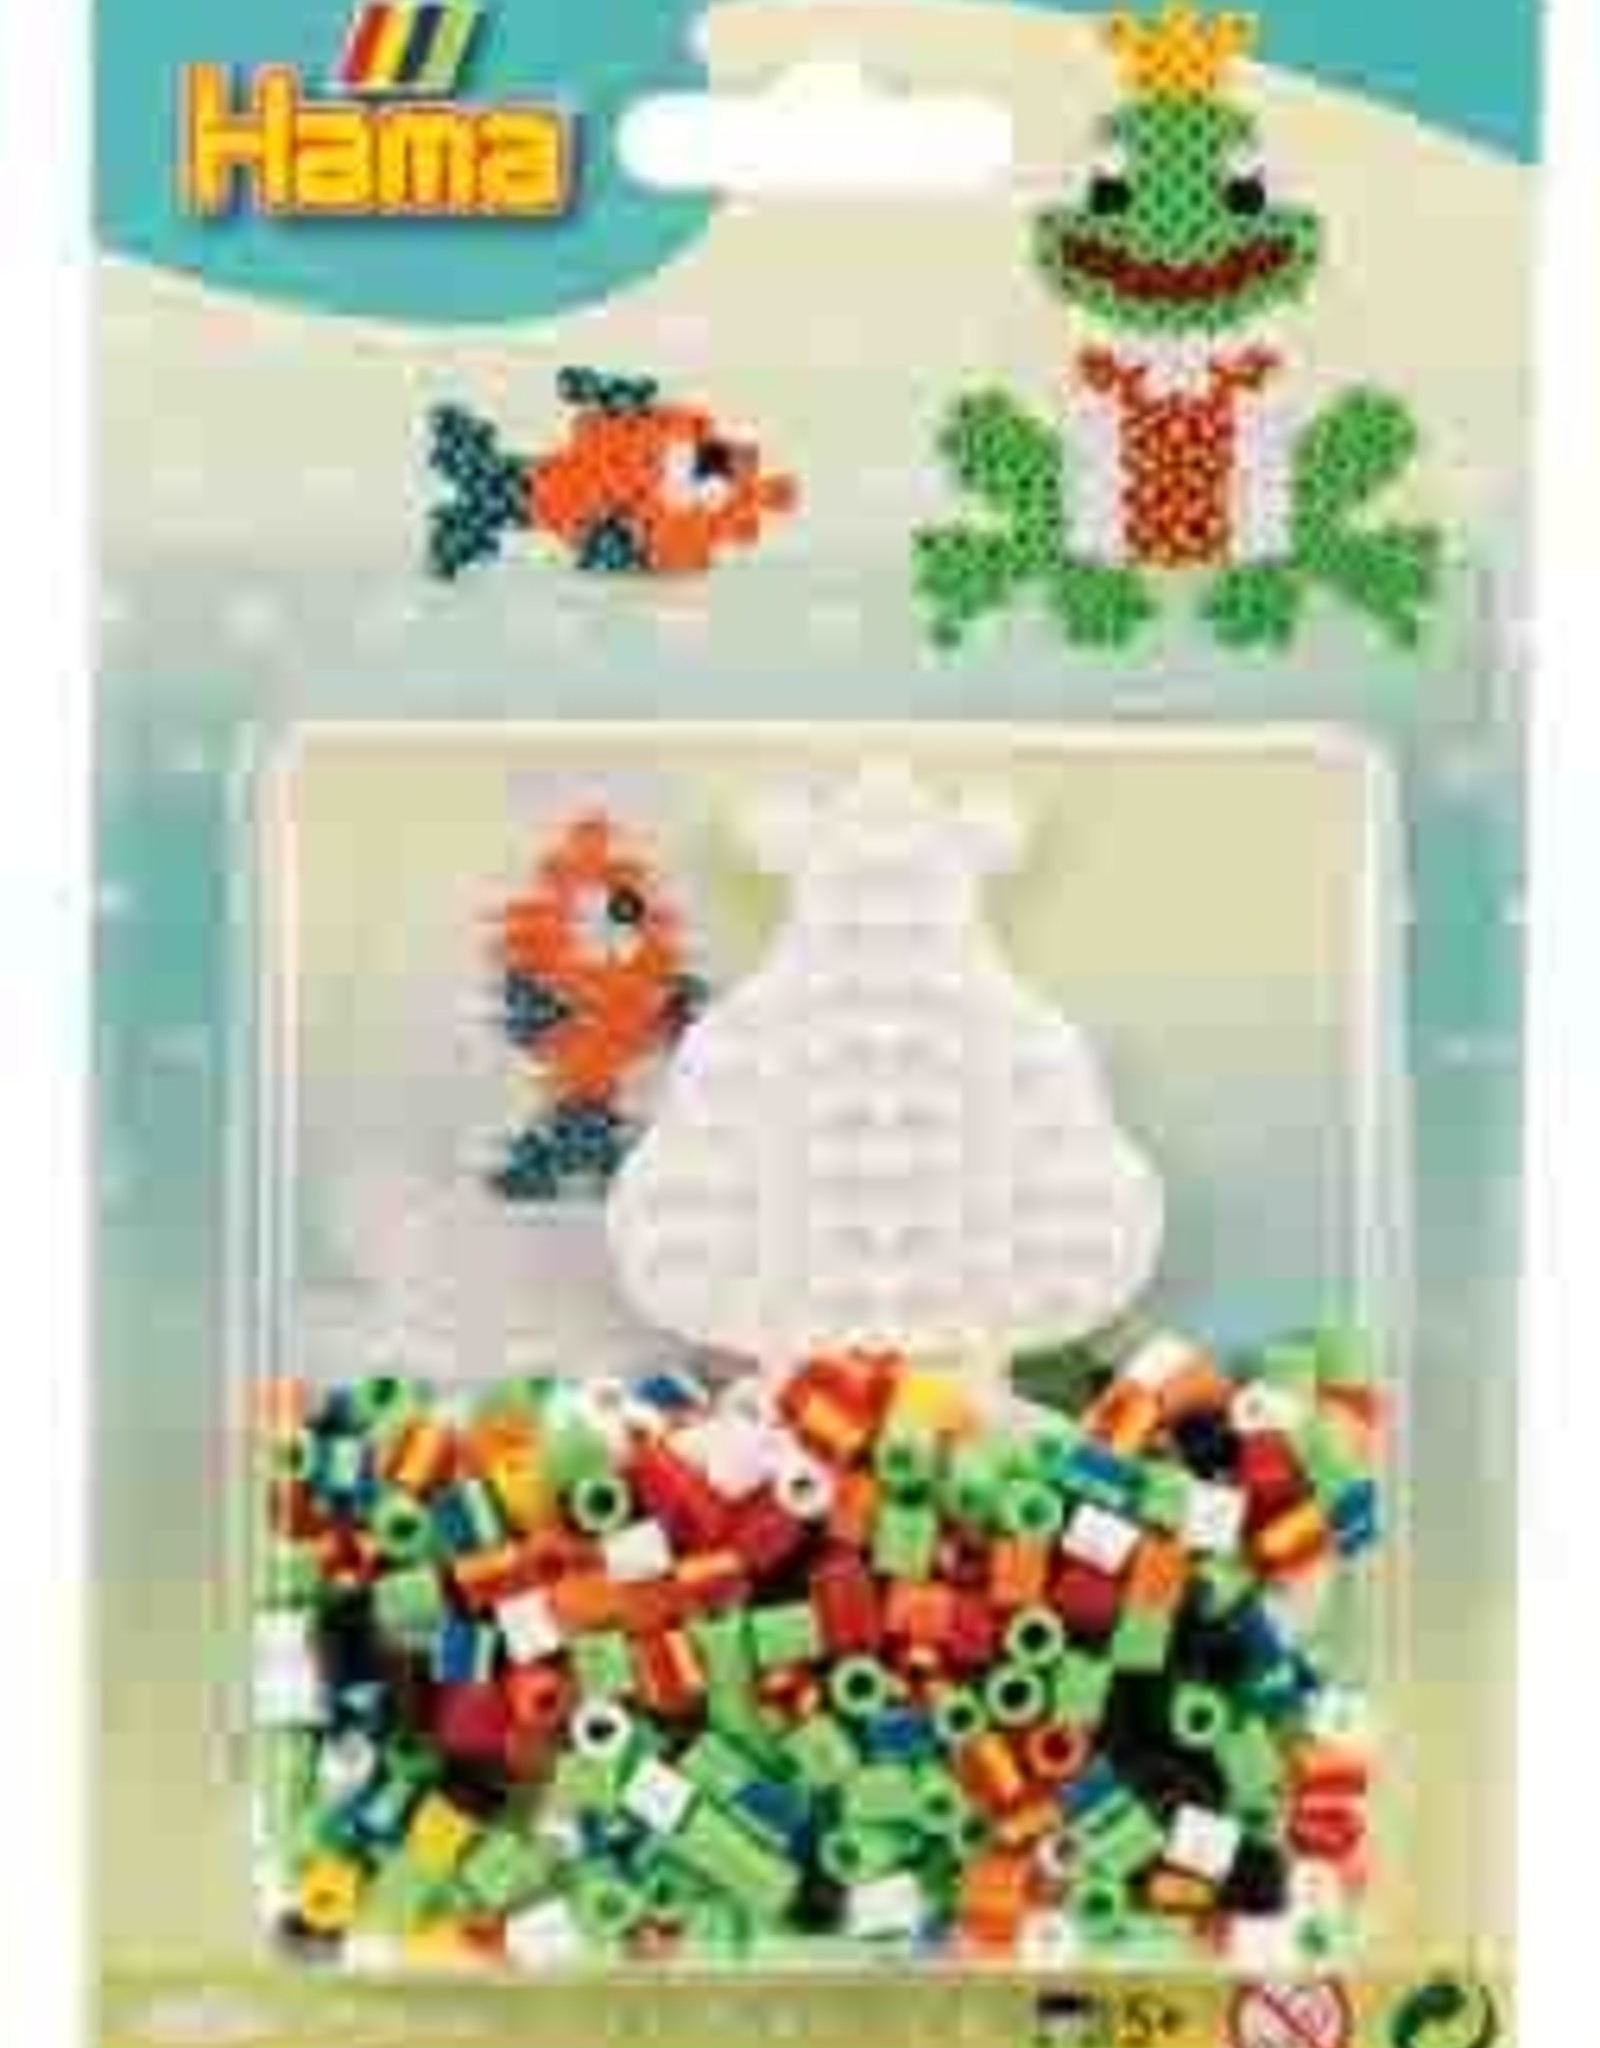 Hama Hama Bead Mini Set - Frog / Fish